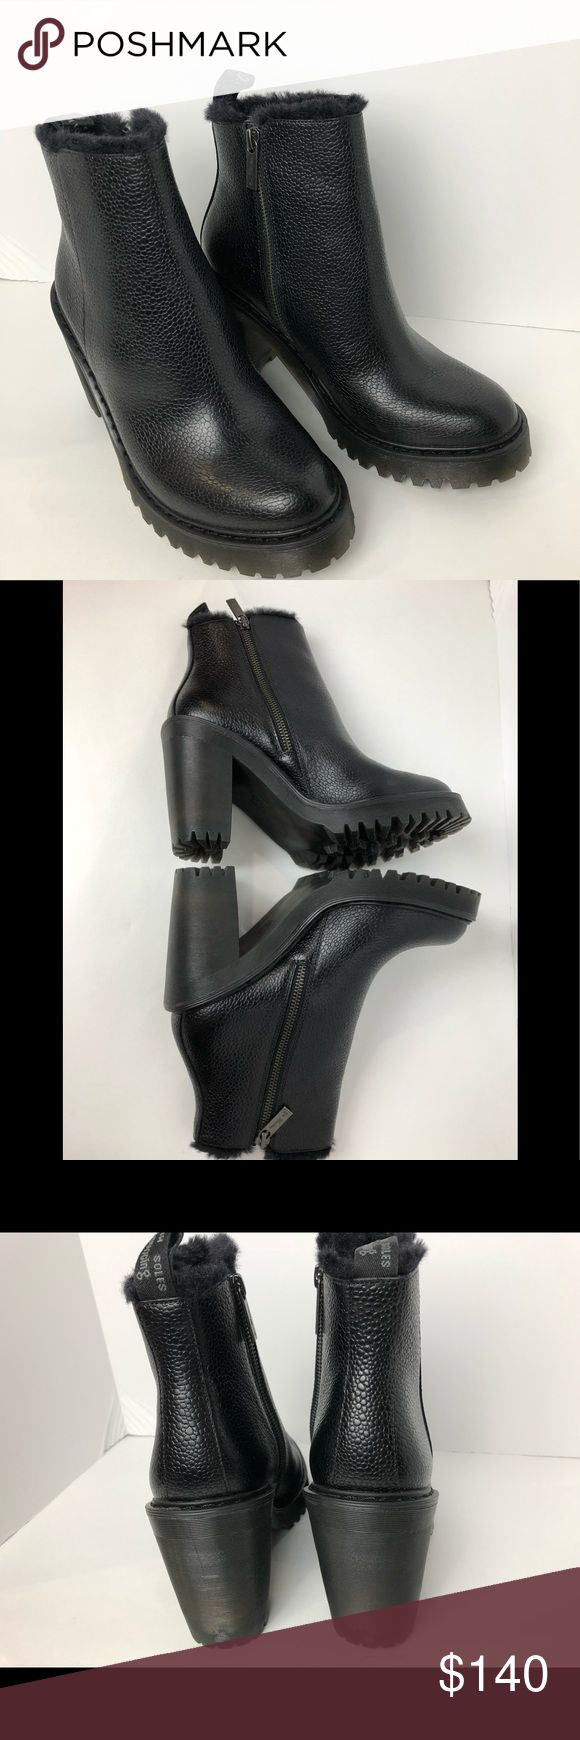 Dr. Martens Magdalena Ankle BOOTS SHOES Black  sz8 New without box. Color = black with faux fur lining..  Size = US 8 Euro= 39 UK = 6  Please see all pictures.. no box or tags but these are brand new   (C1) Dr. Martens Shoes Ankle Boots & Booties